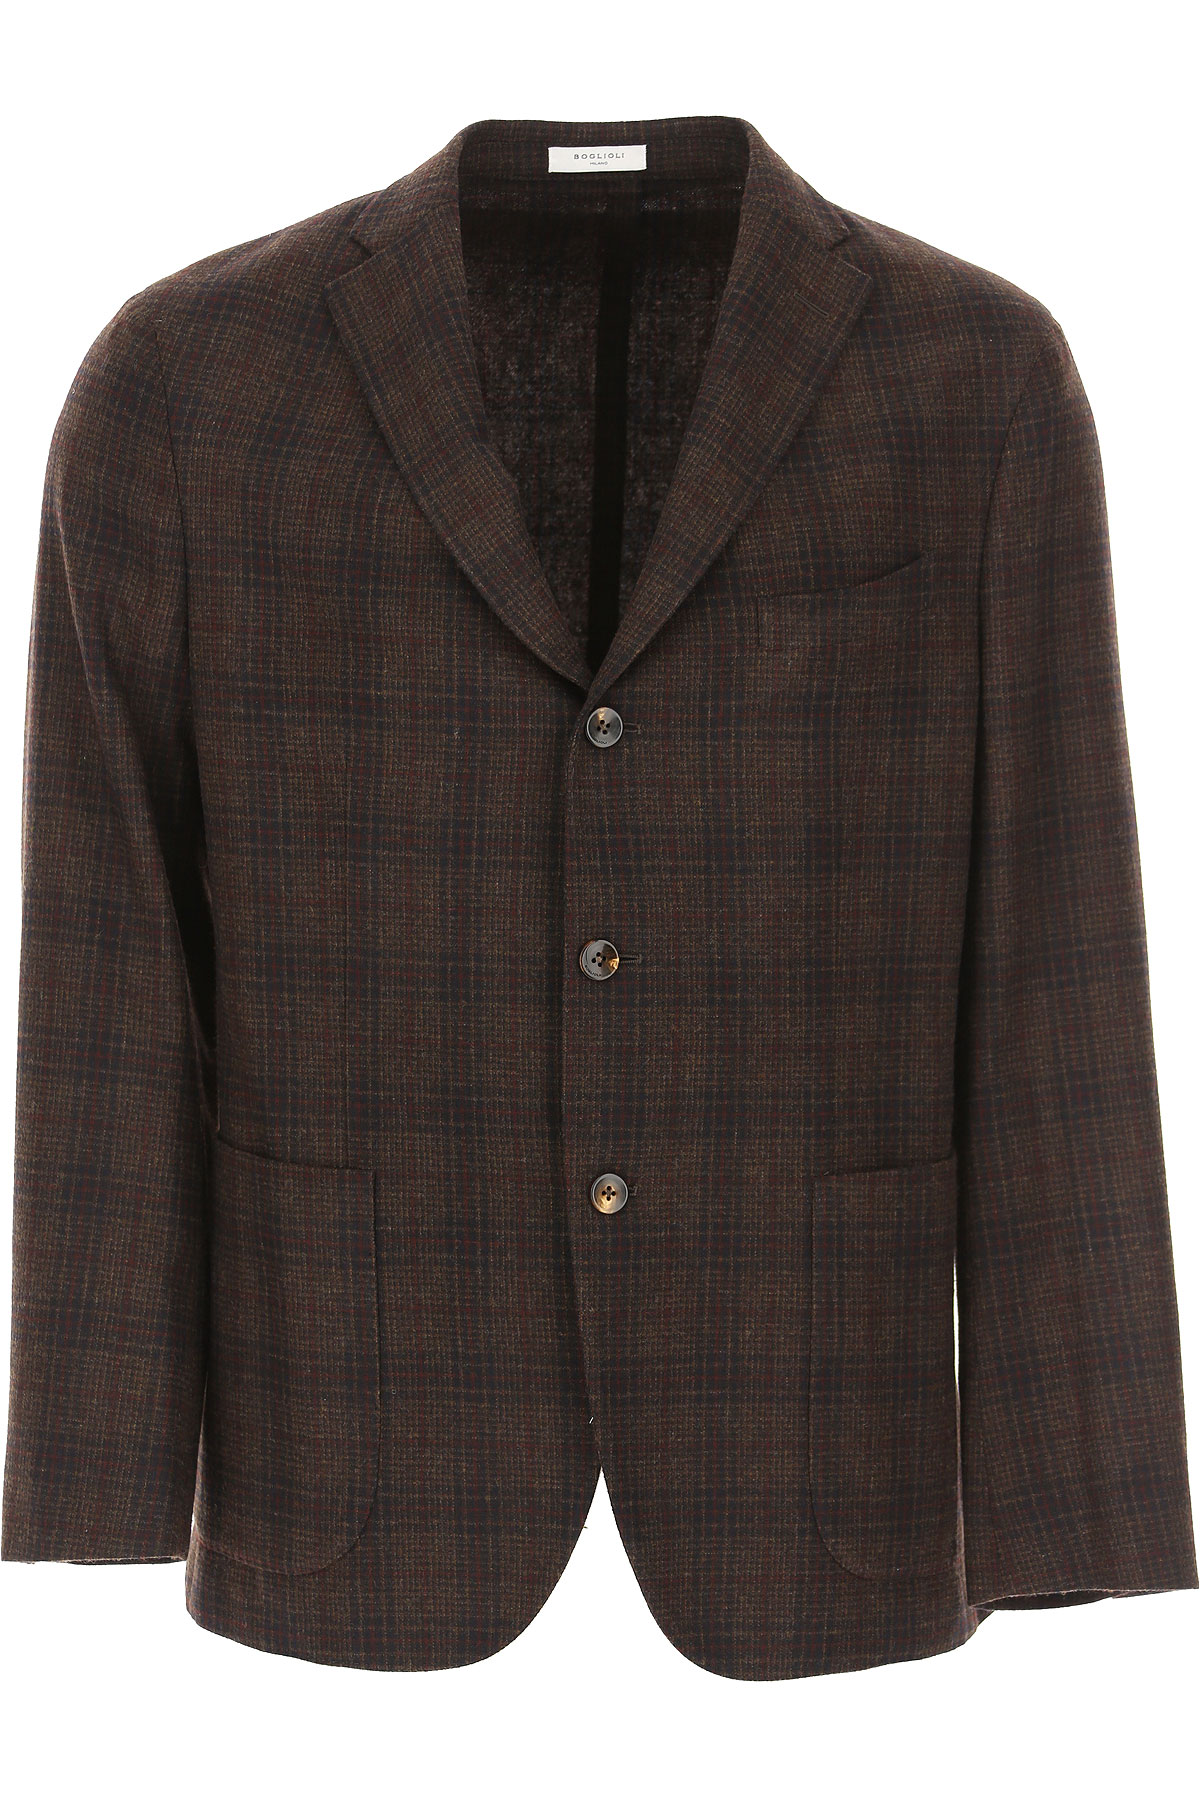 Boglioli Blazer for Men, Sport Coat On Sale, Dark Brown, Wool, 2019, L XL XXXL